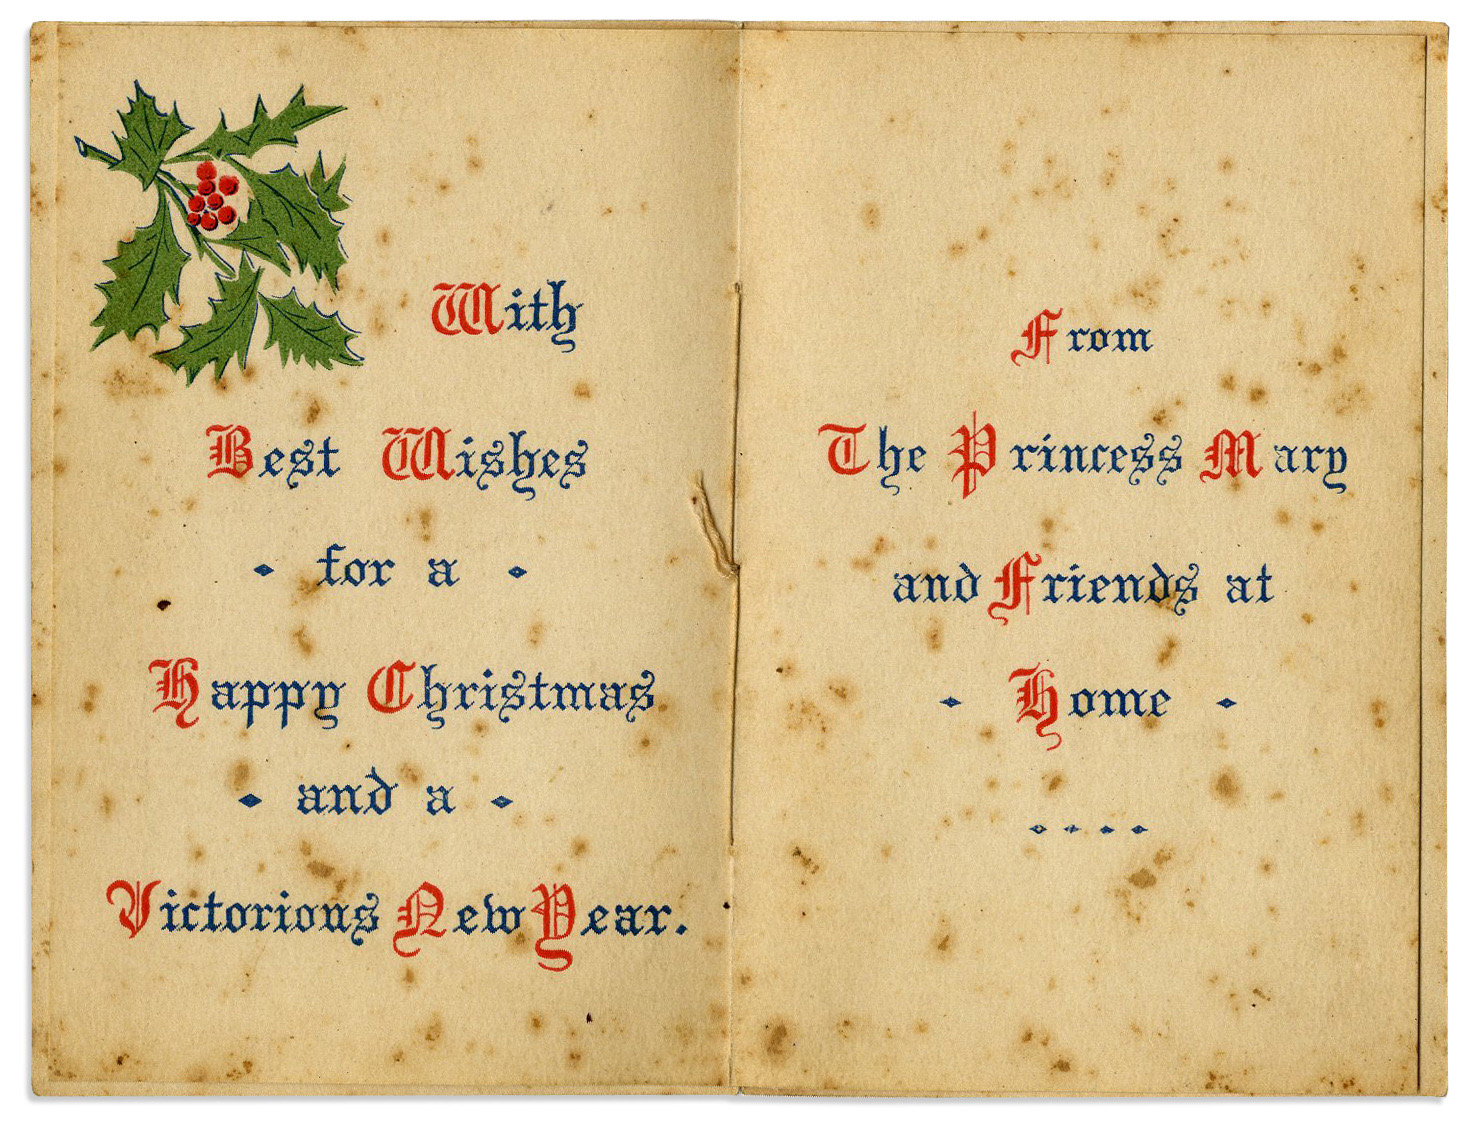 Princess Mary's Christmas card, showing the messages printed on the inside